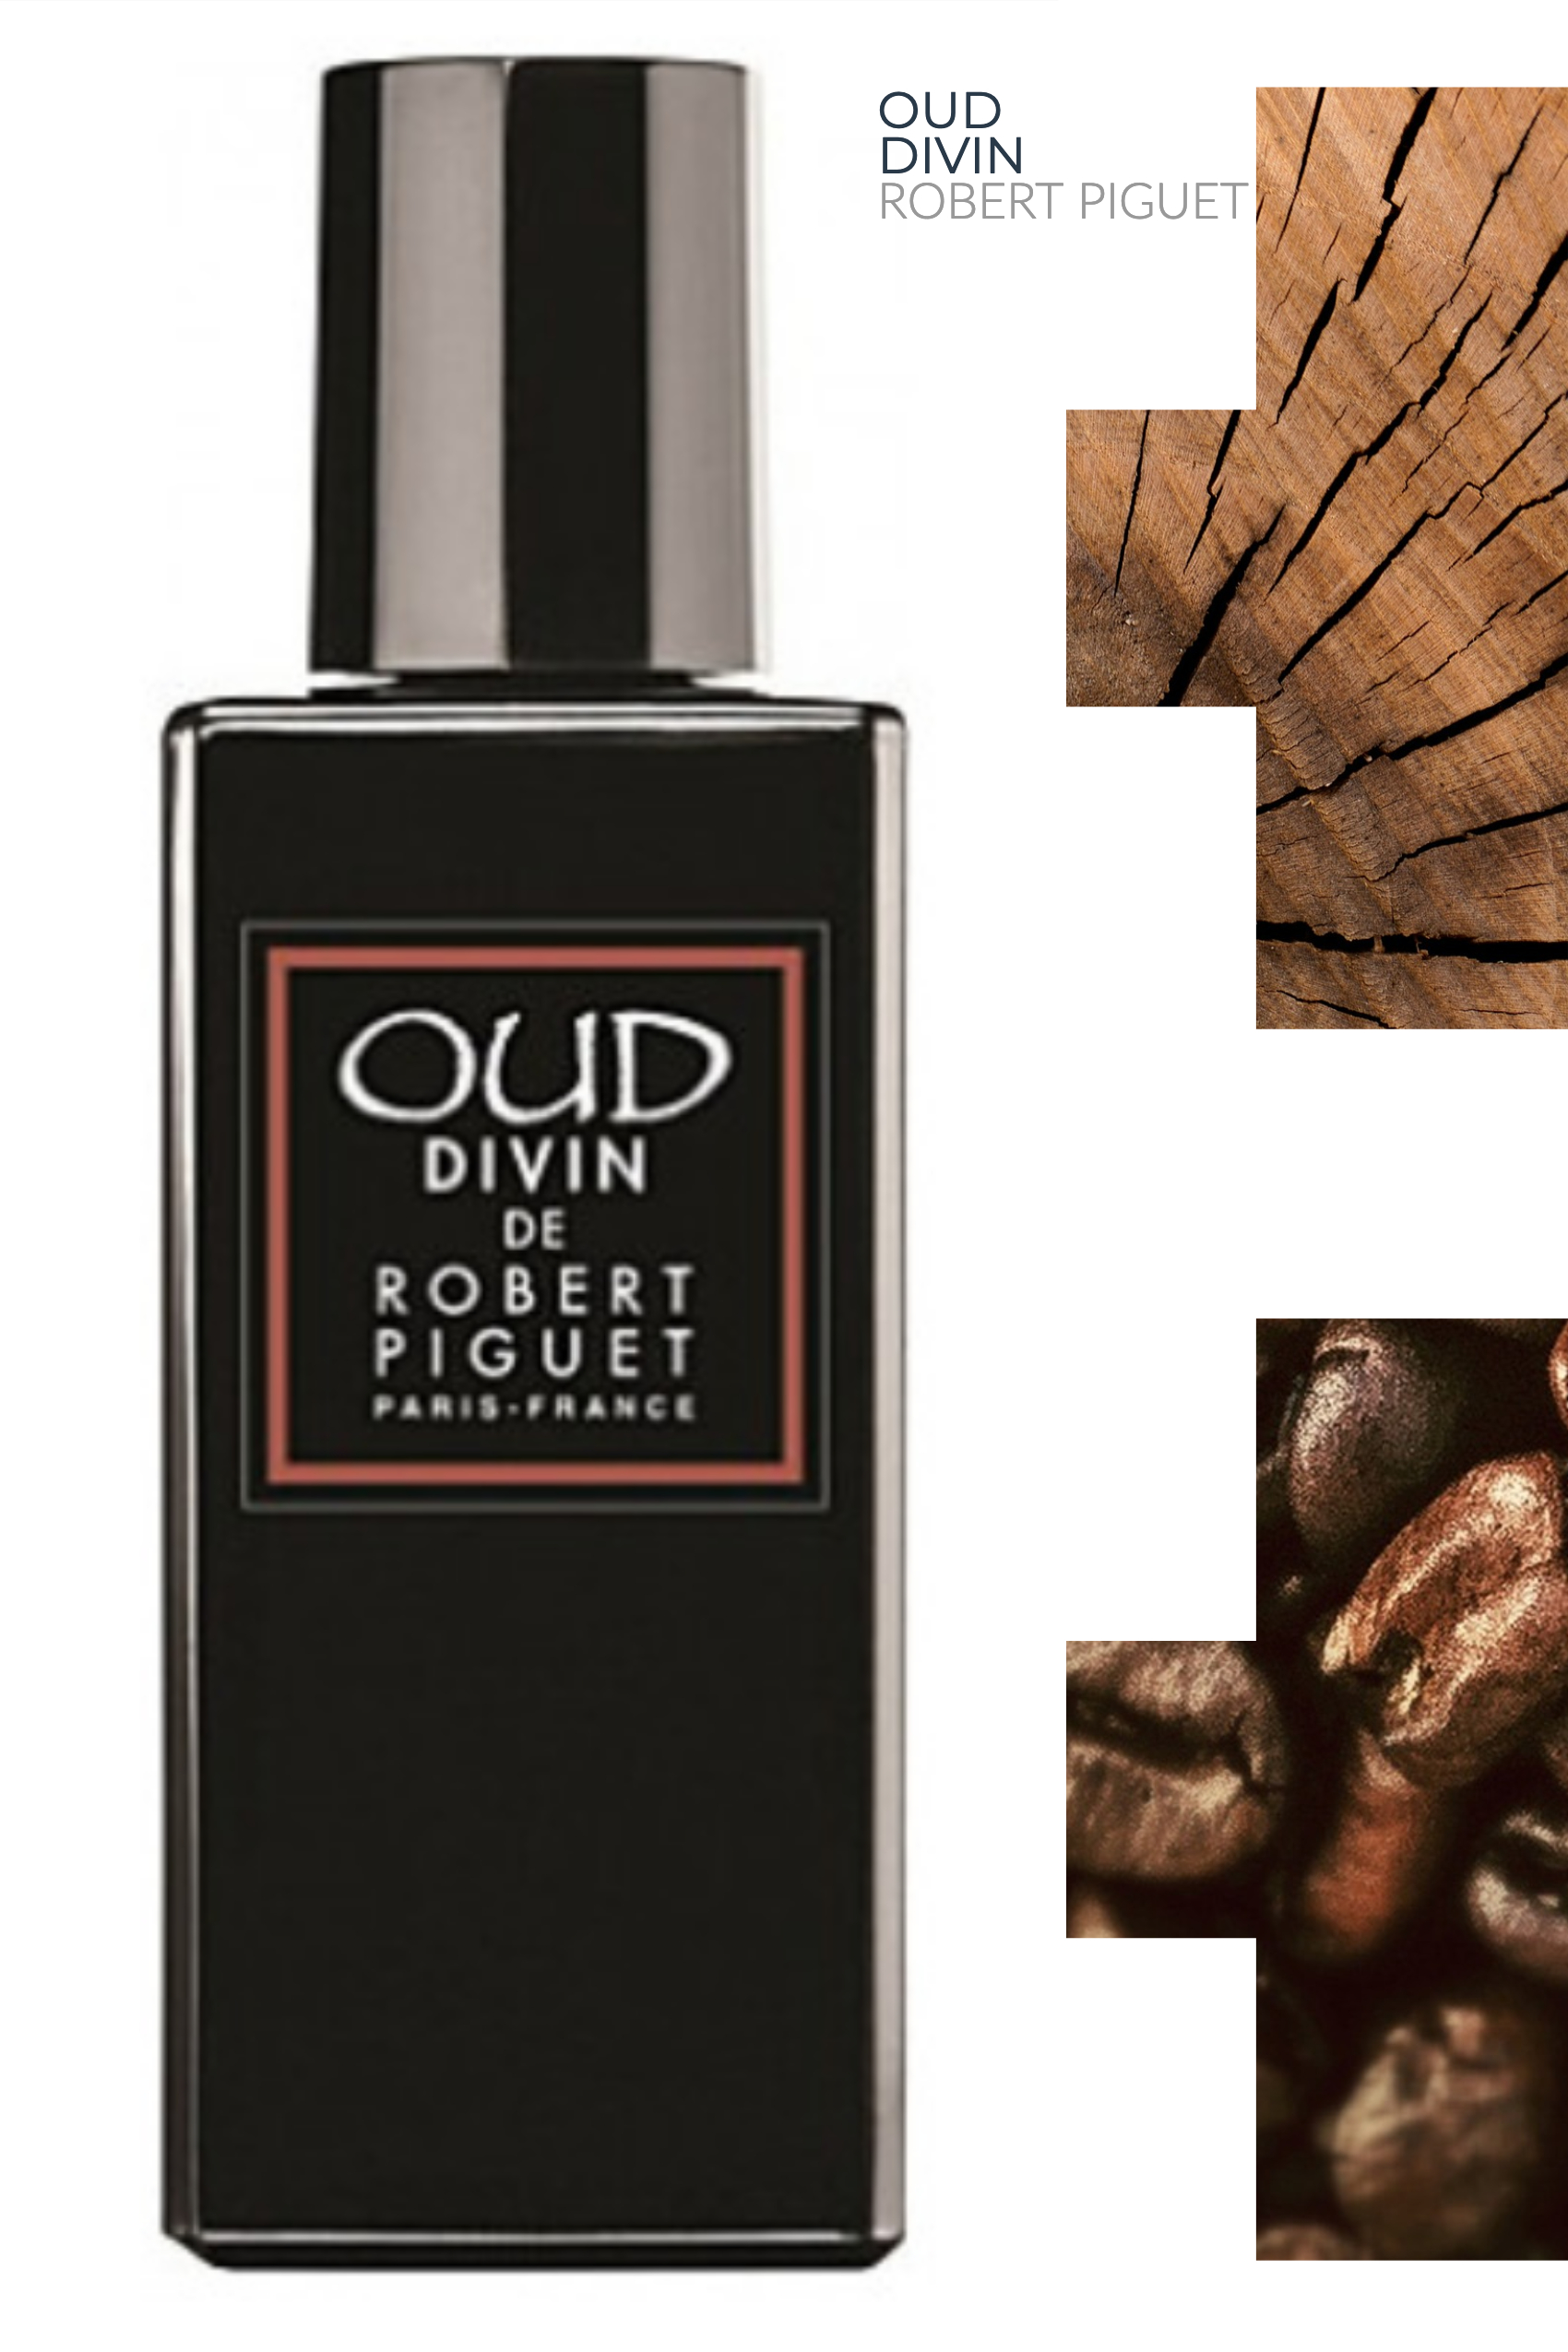 7 Unisex Perfumes, OUD Divin, Robert Piguet, cause and yvette